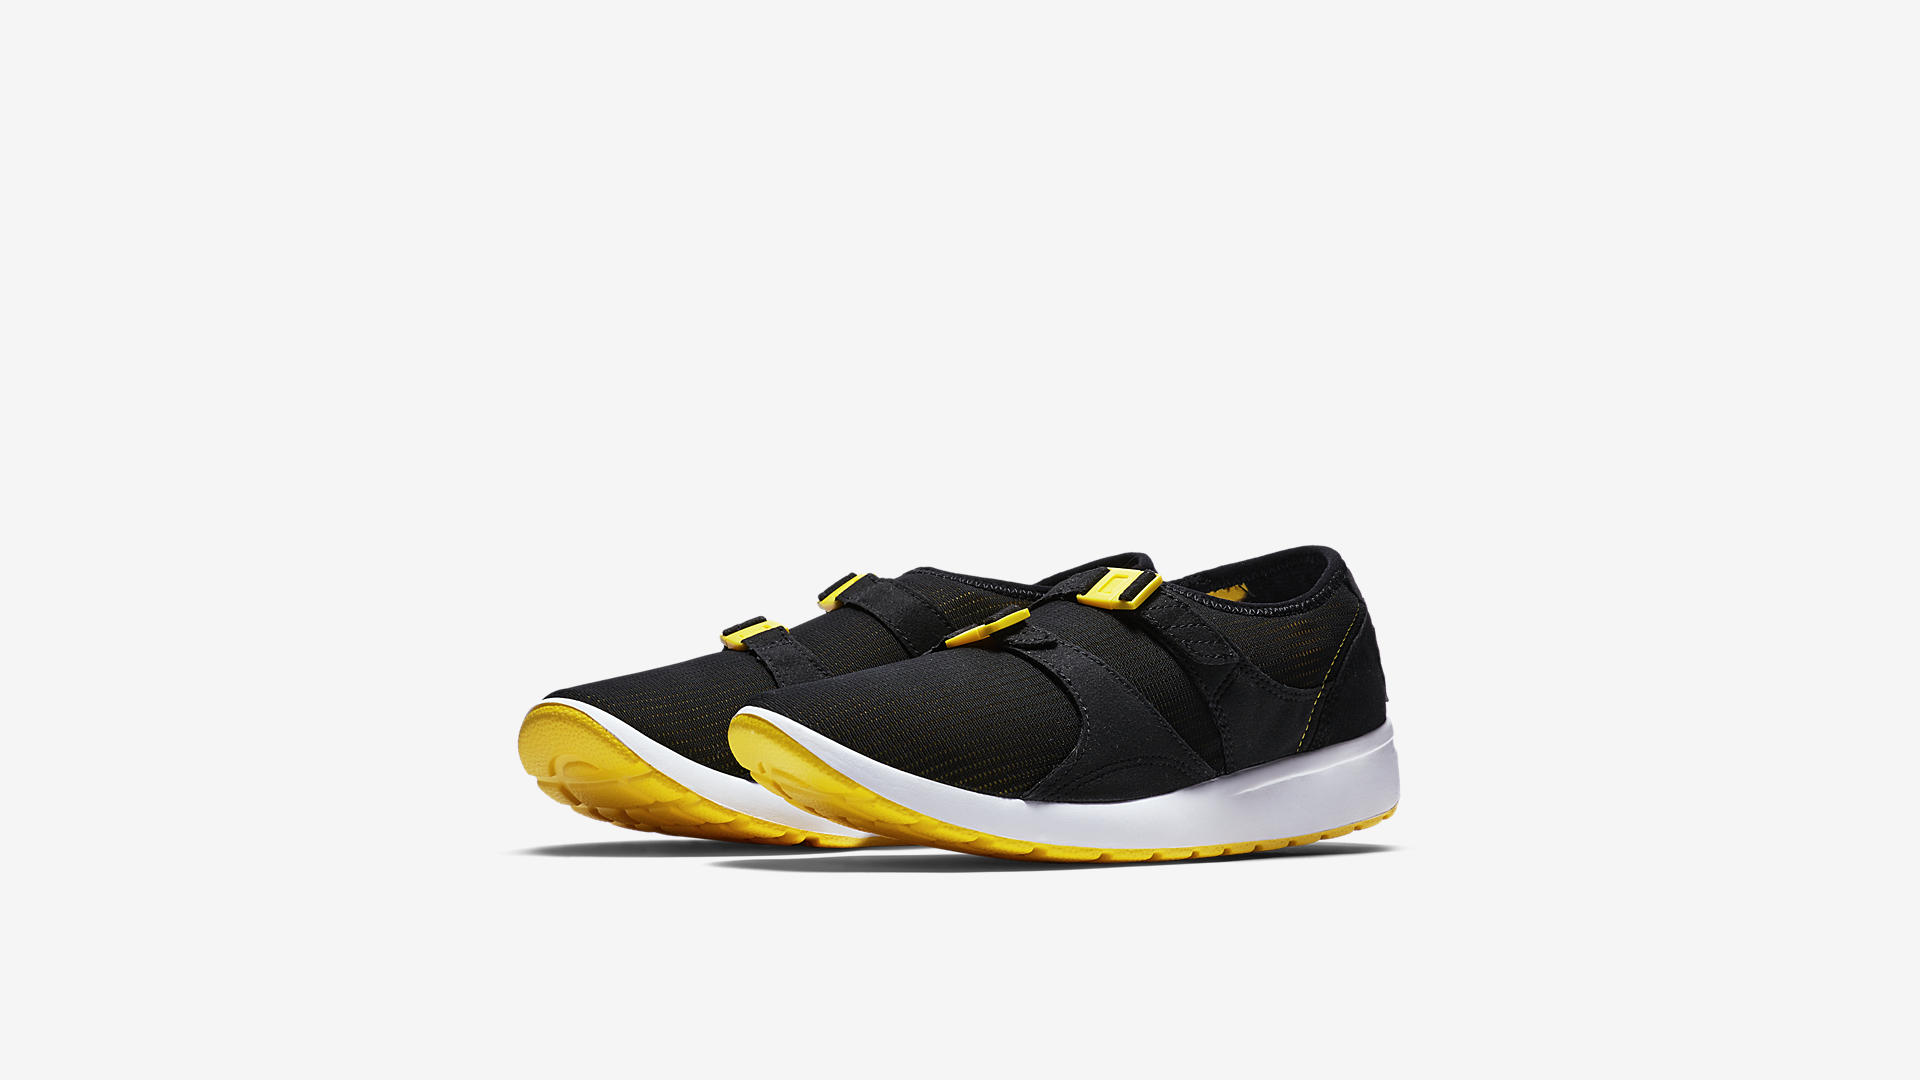 Nike Air Sock Racer OG Black Tour Yellow 875837 001 1